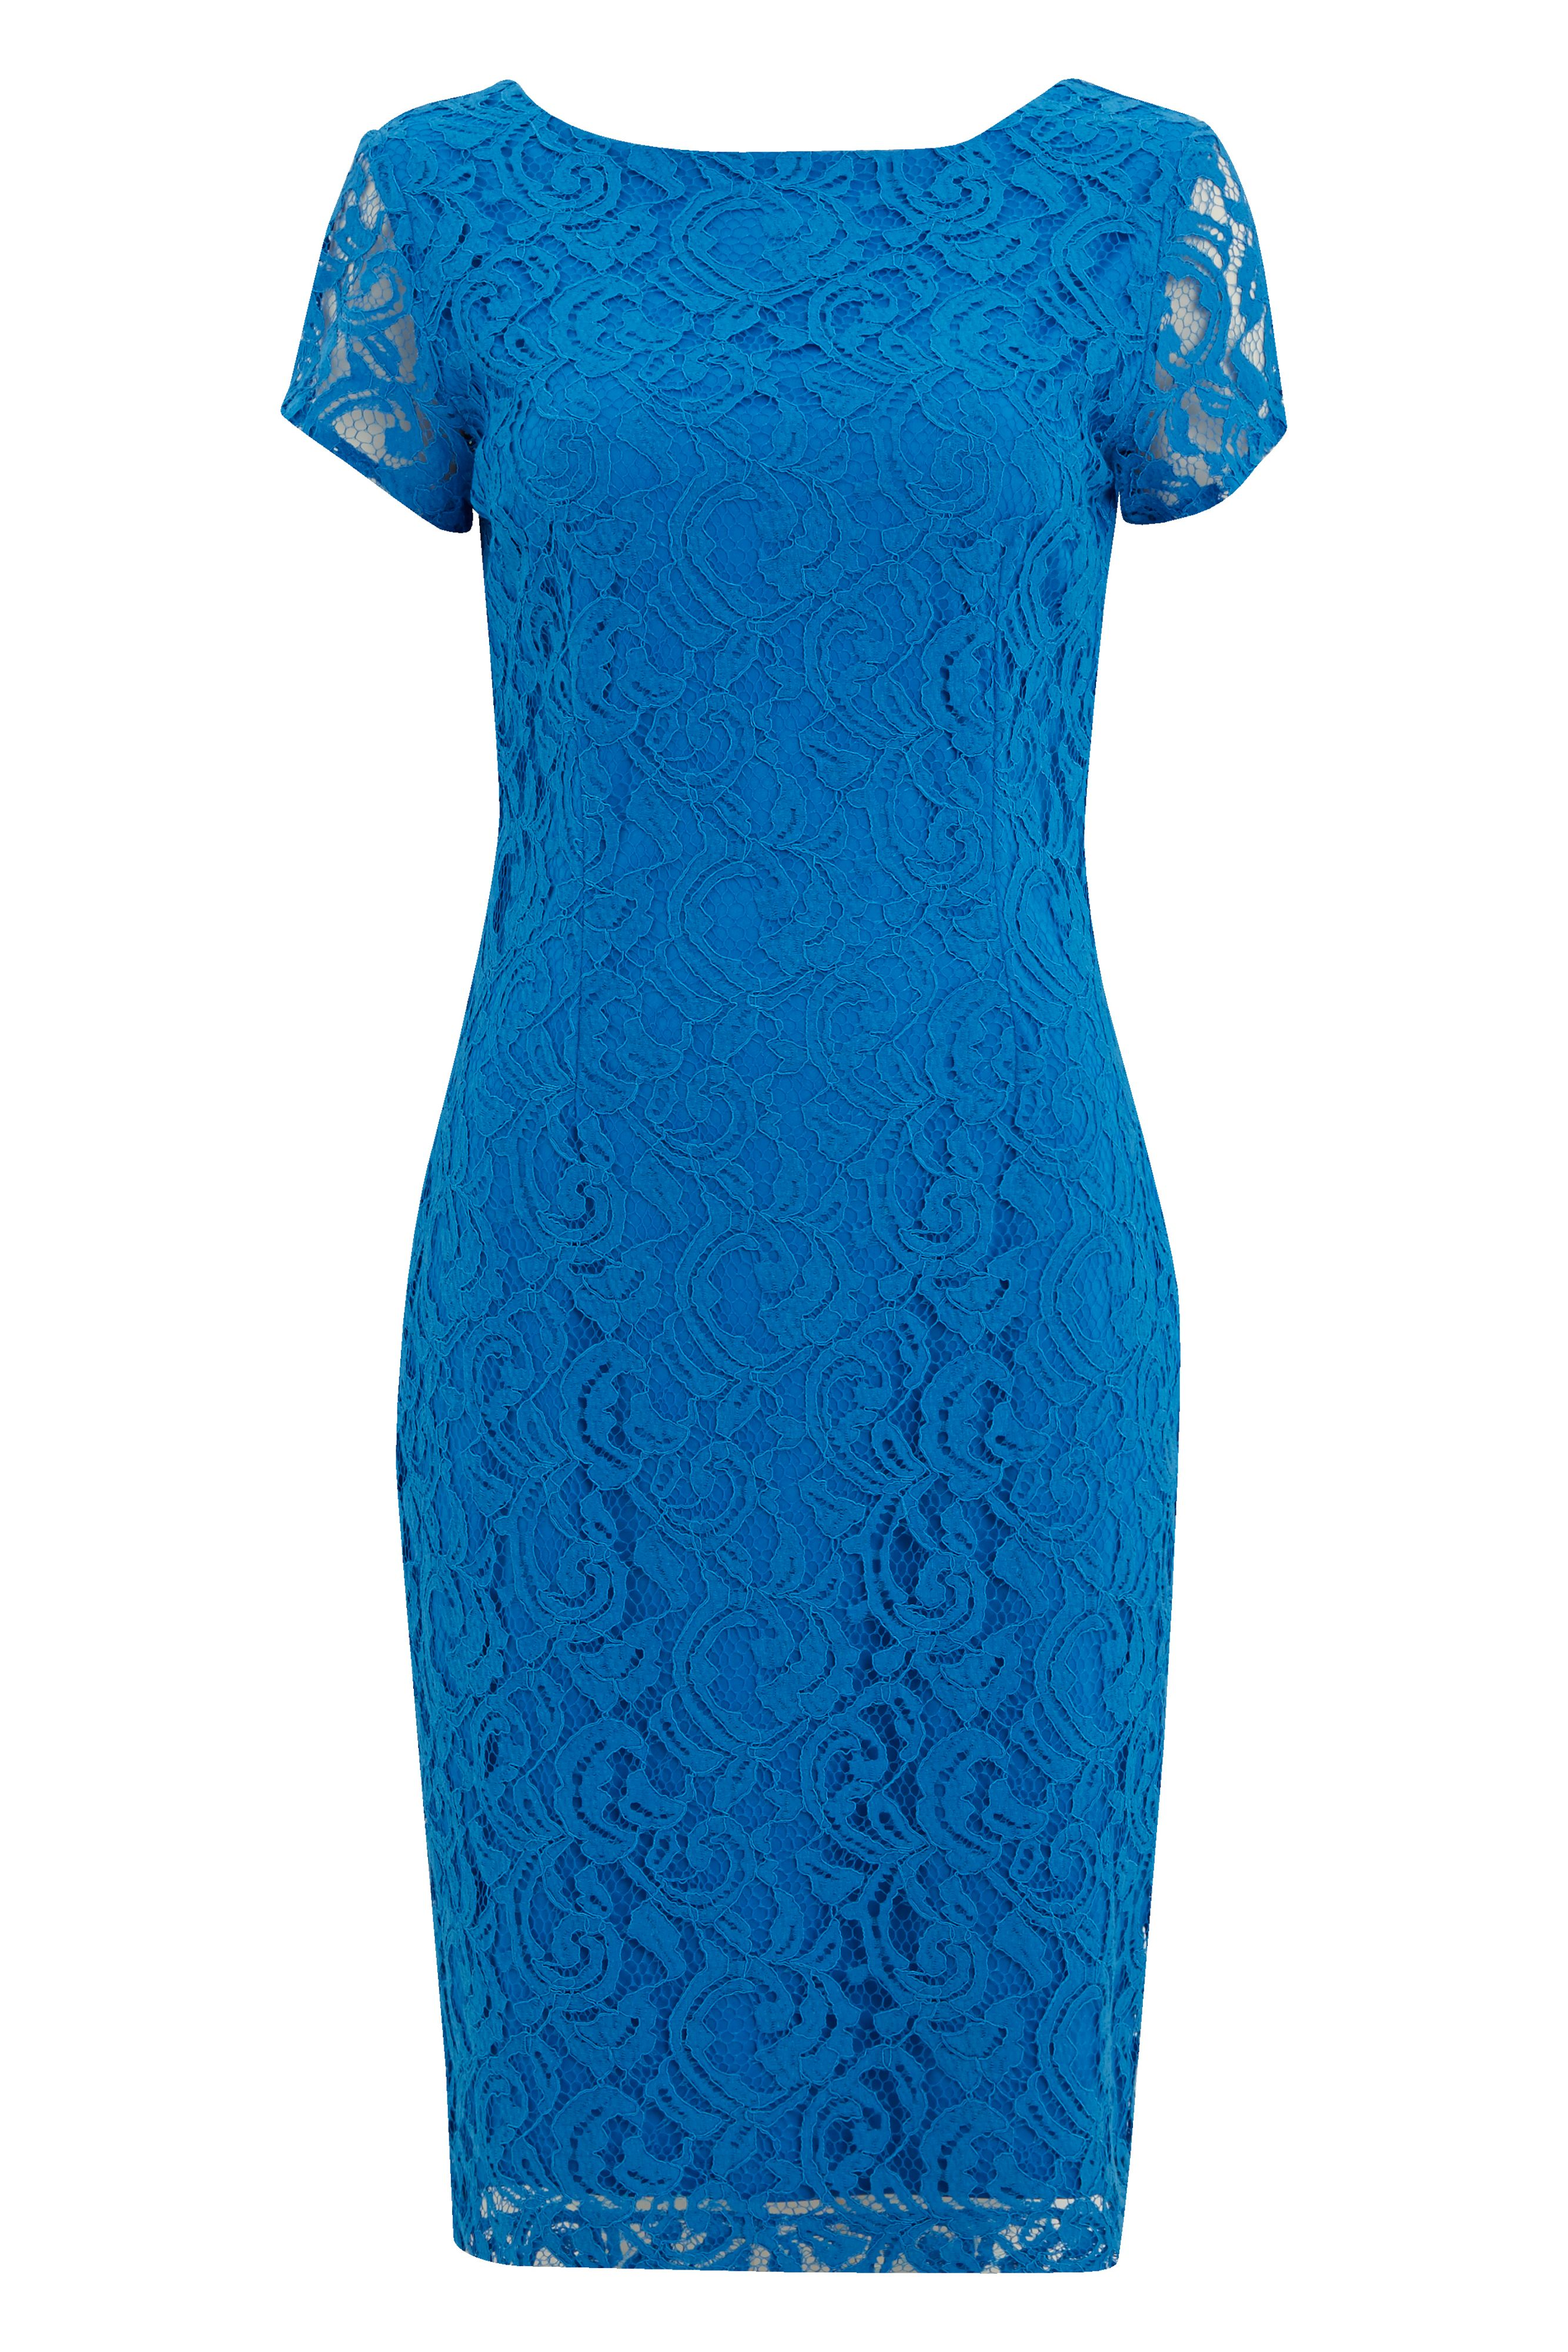 Roman Originals Lace V Back Dress, Blue